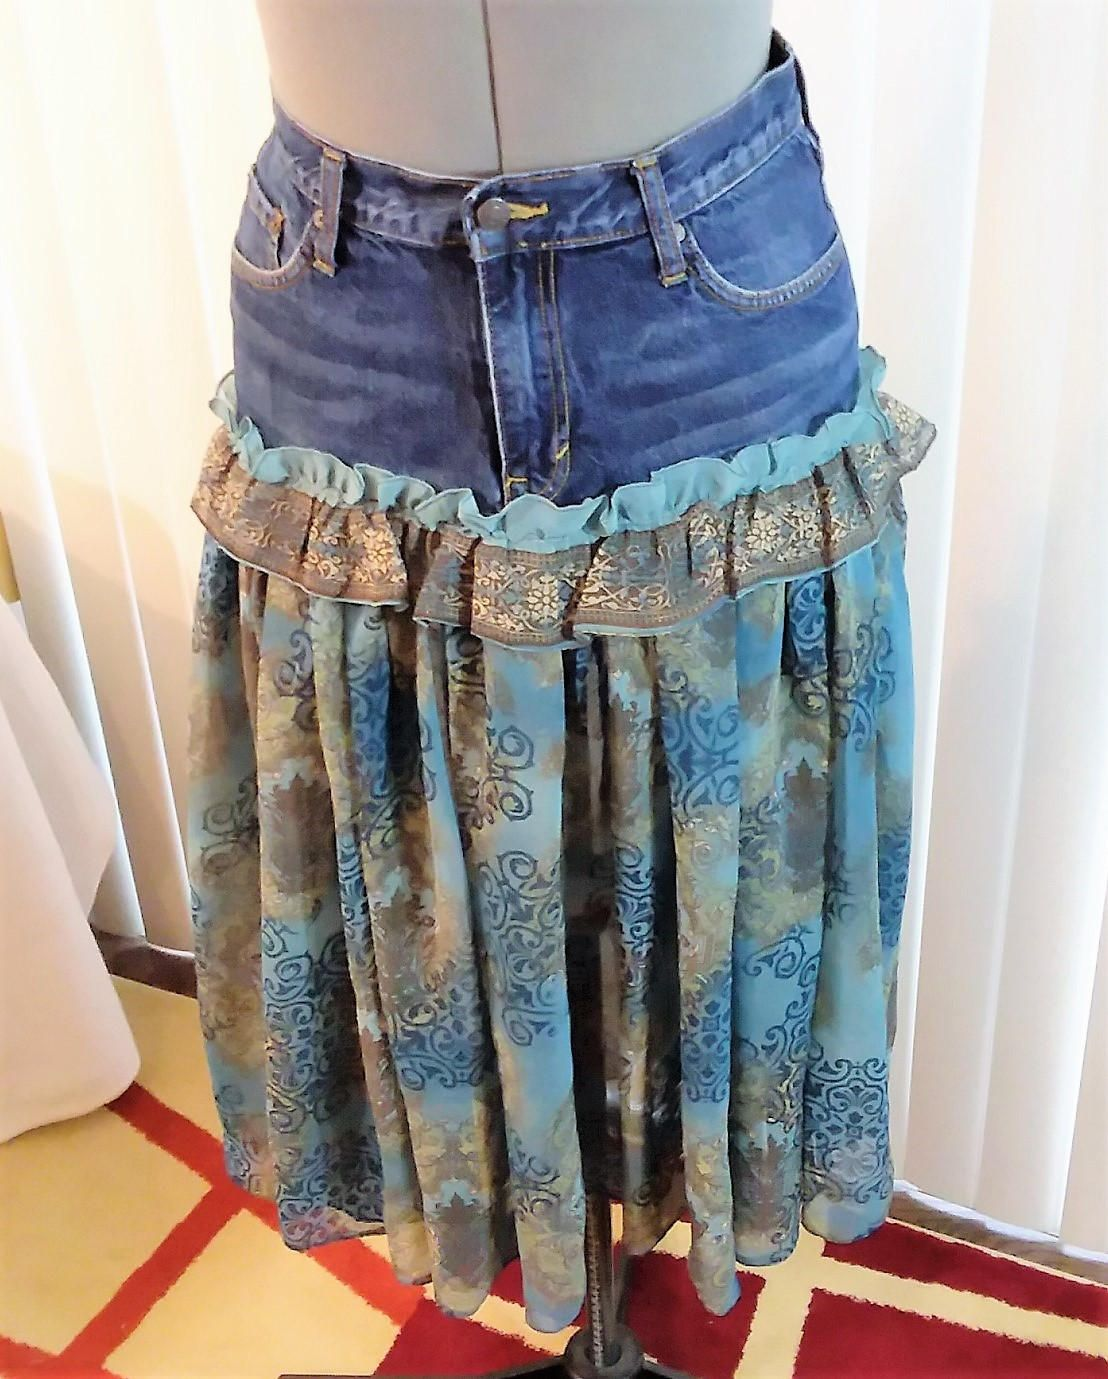 86ecf97b7e Upcycled Recycled Skirt Denim Jeans to Skirt Refashion Altered Couture  Reworked Fashion Remix Subdued Blues Browns w Ruffle Size 30 SKRT3-06 by ...